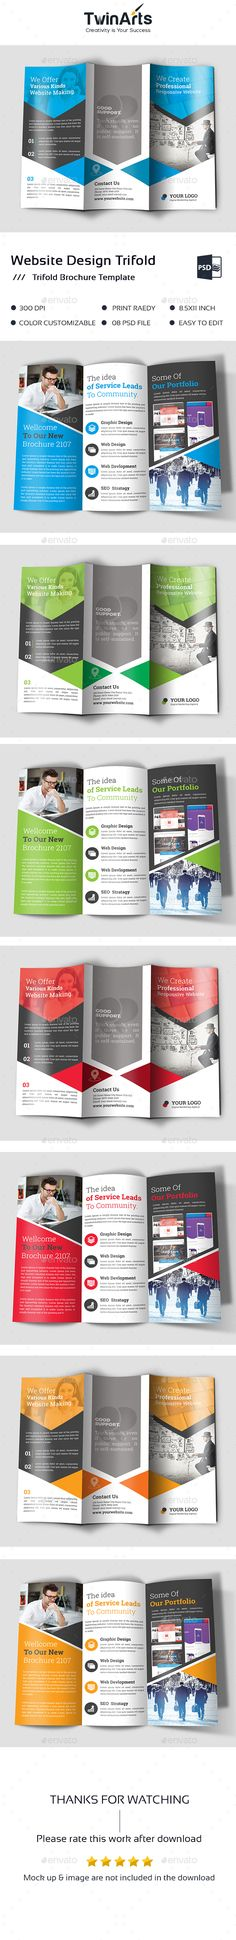 Medical Trifold Print, Template and Medical - download brochure templates for microsoft word